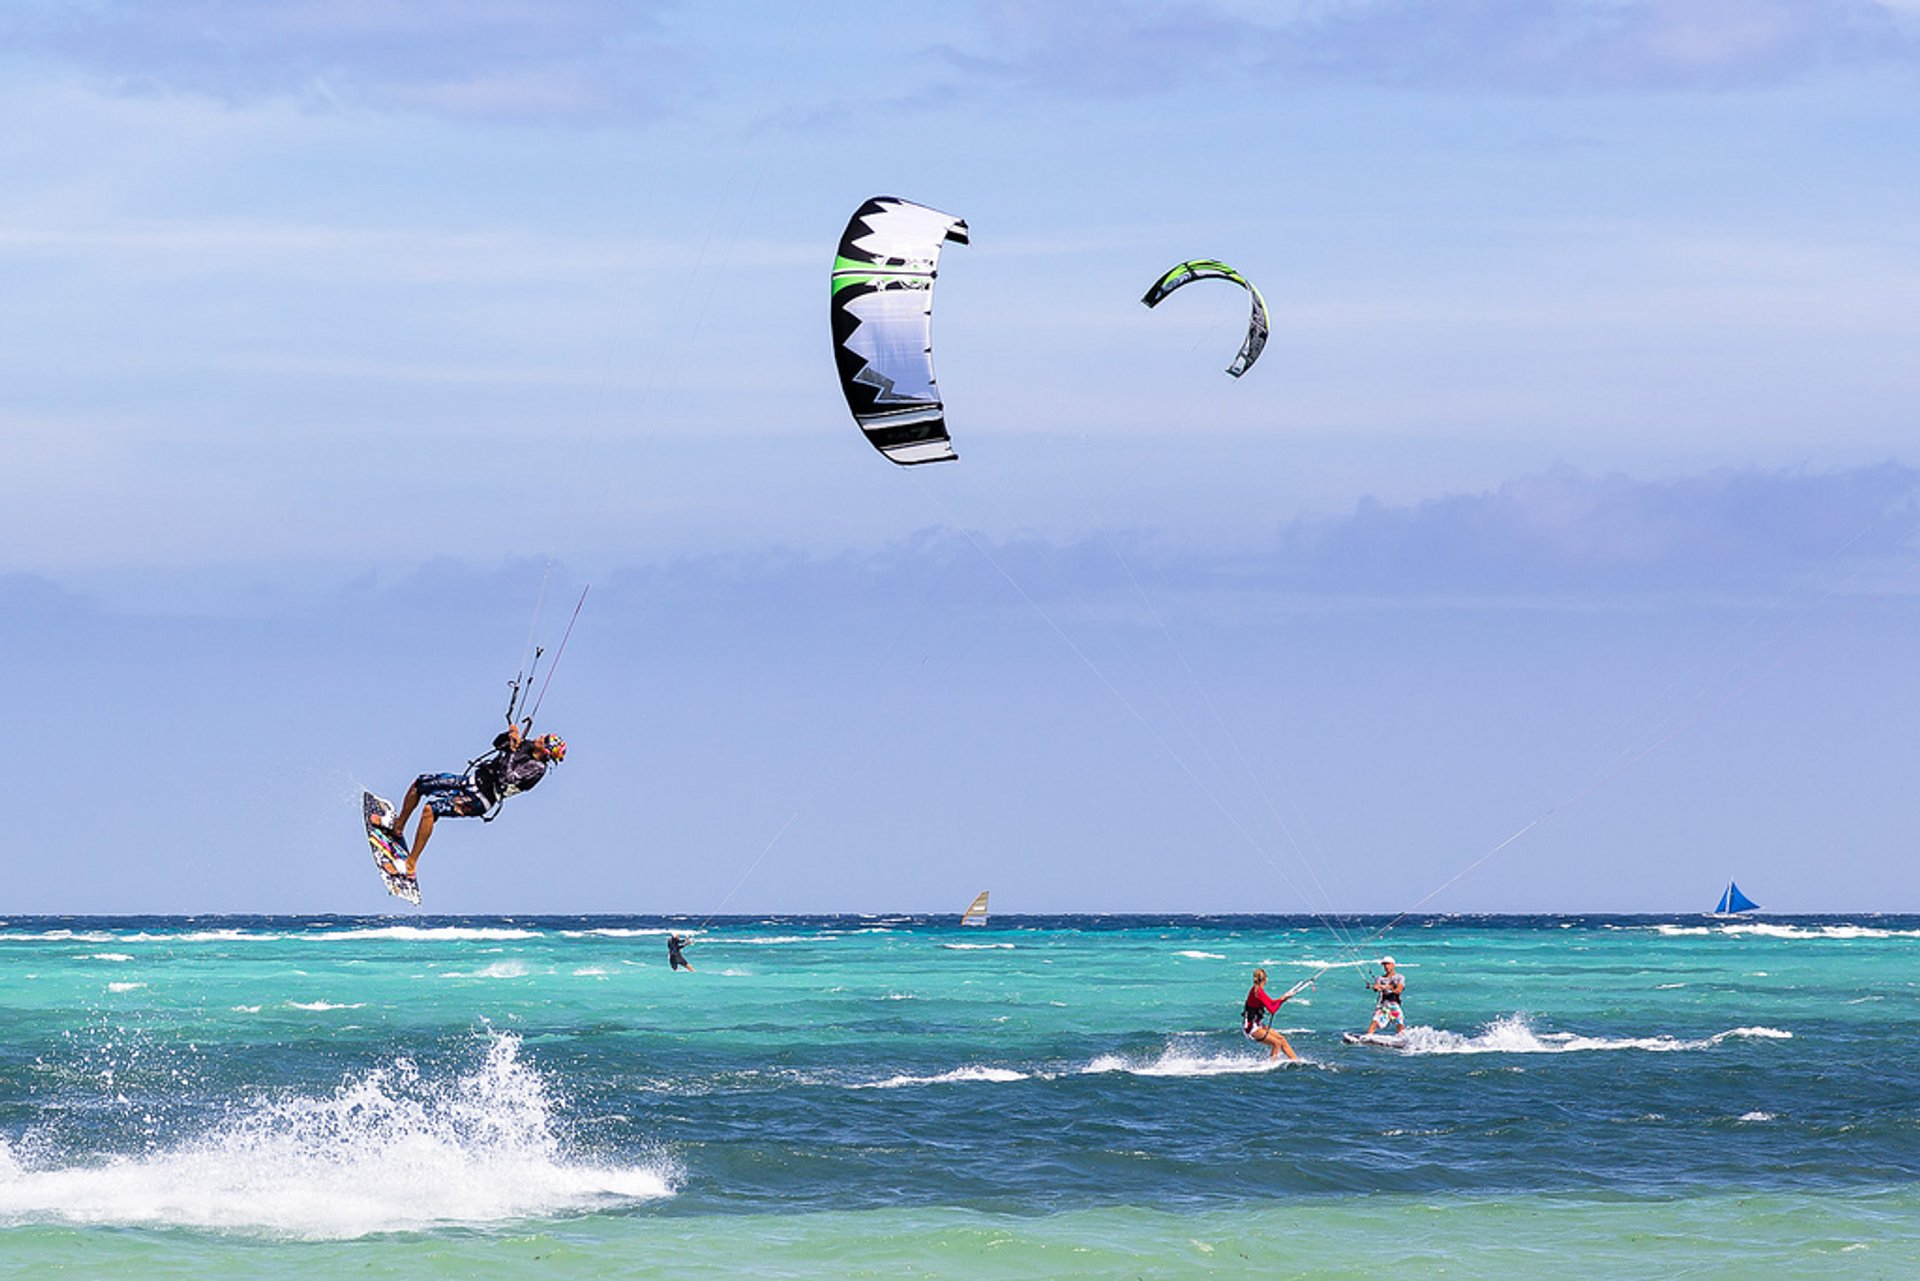 Best time for Kitesurfing on Boracay in Philippines 2020